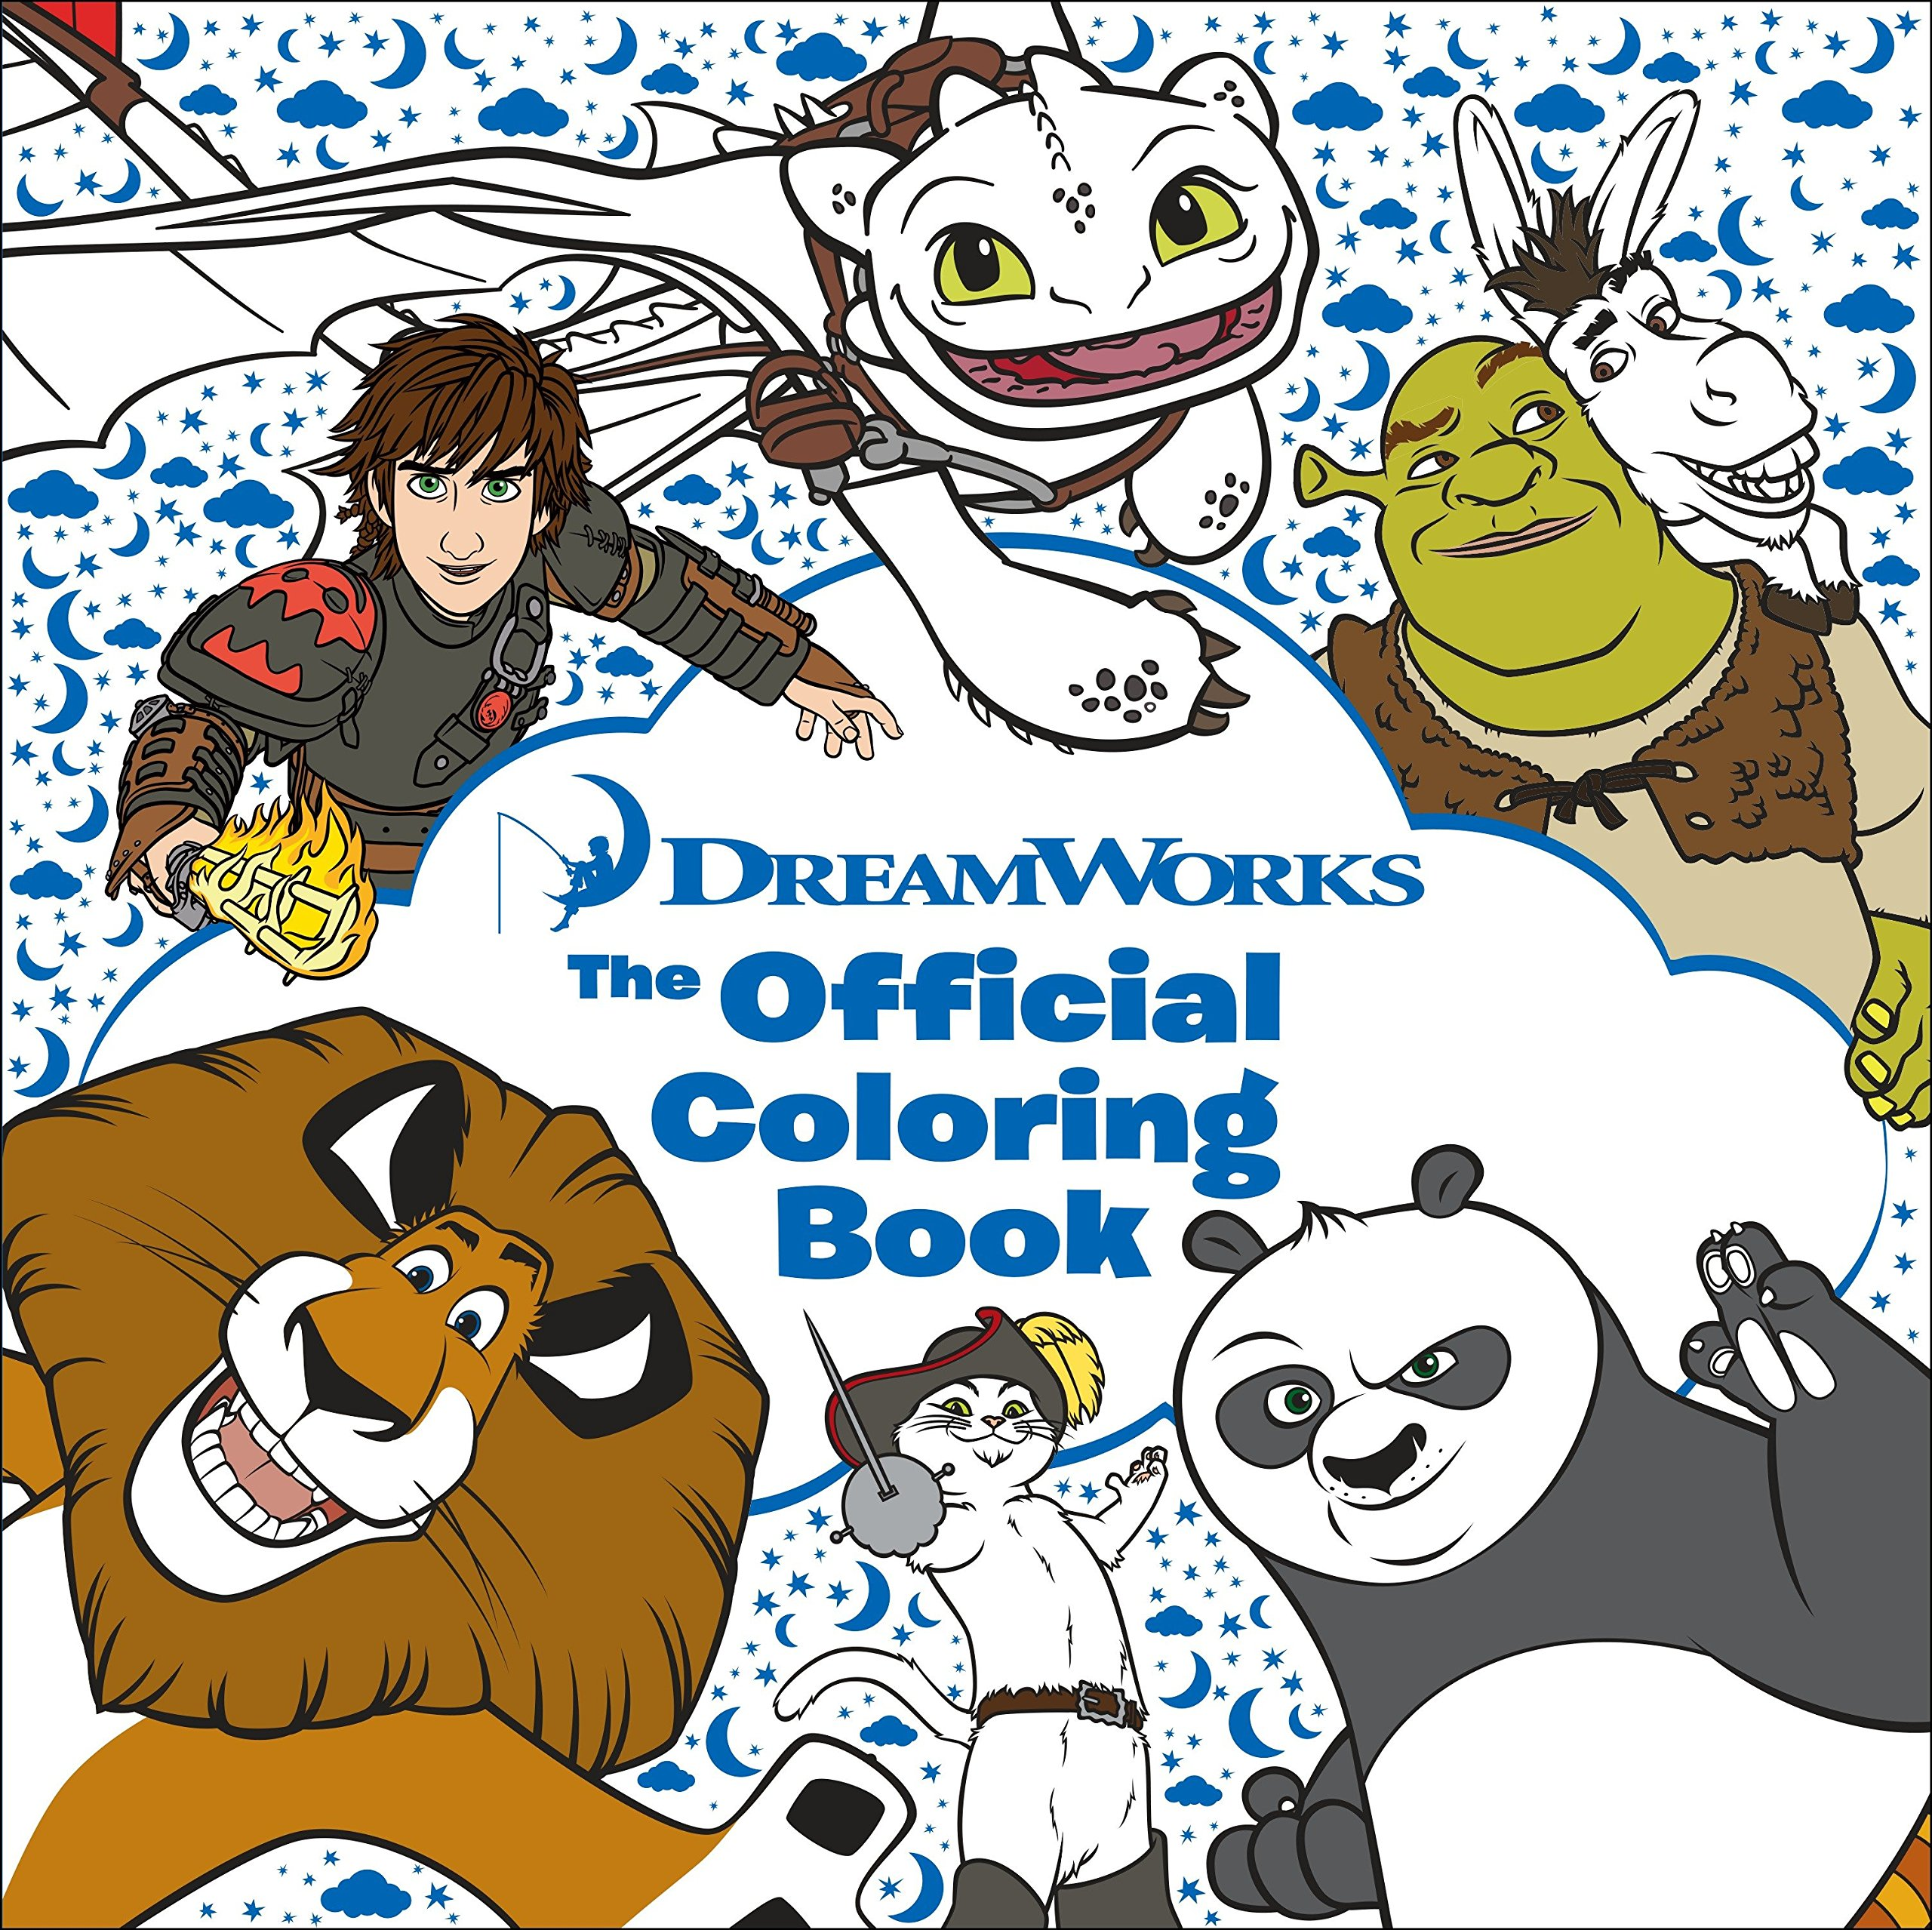 DreamWorks: The Official Coloring Book (Adult Coloring Book)